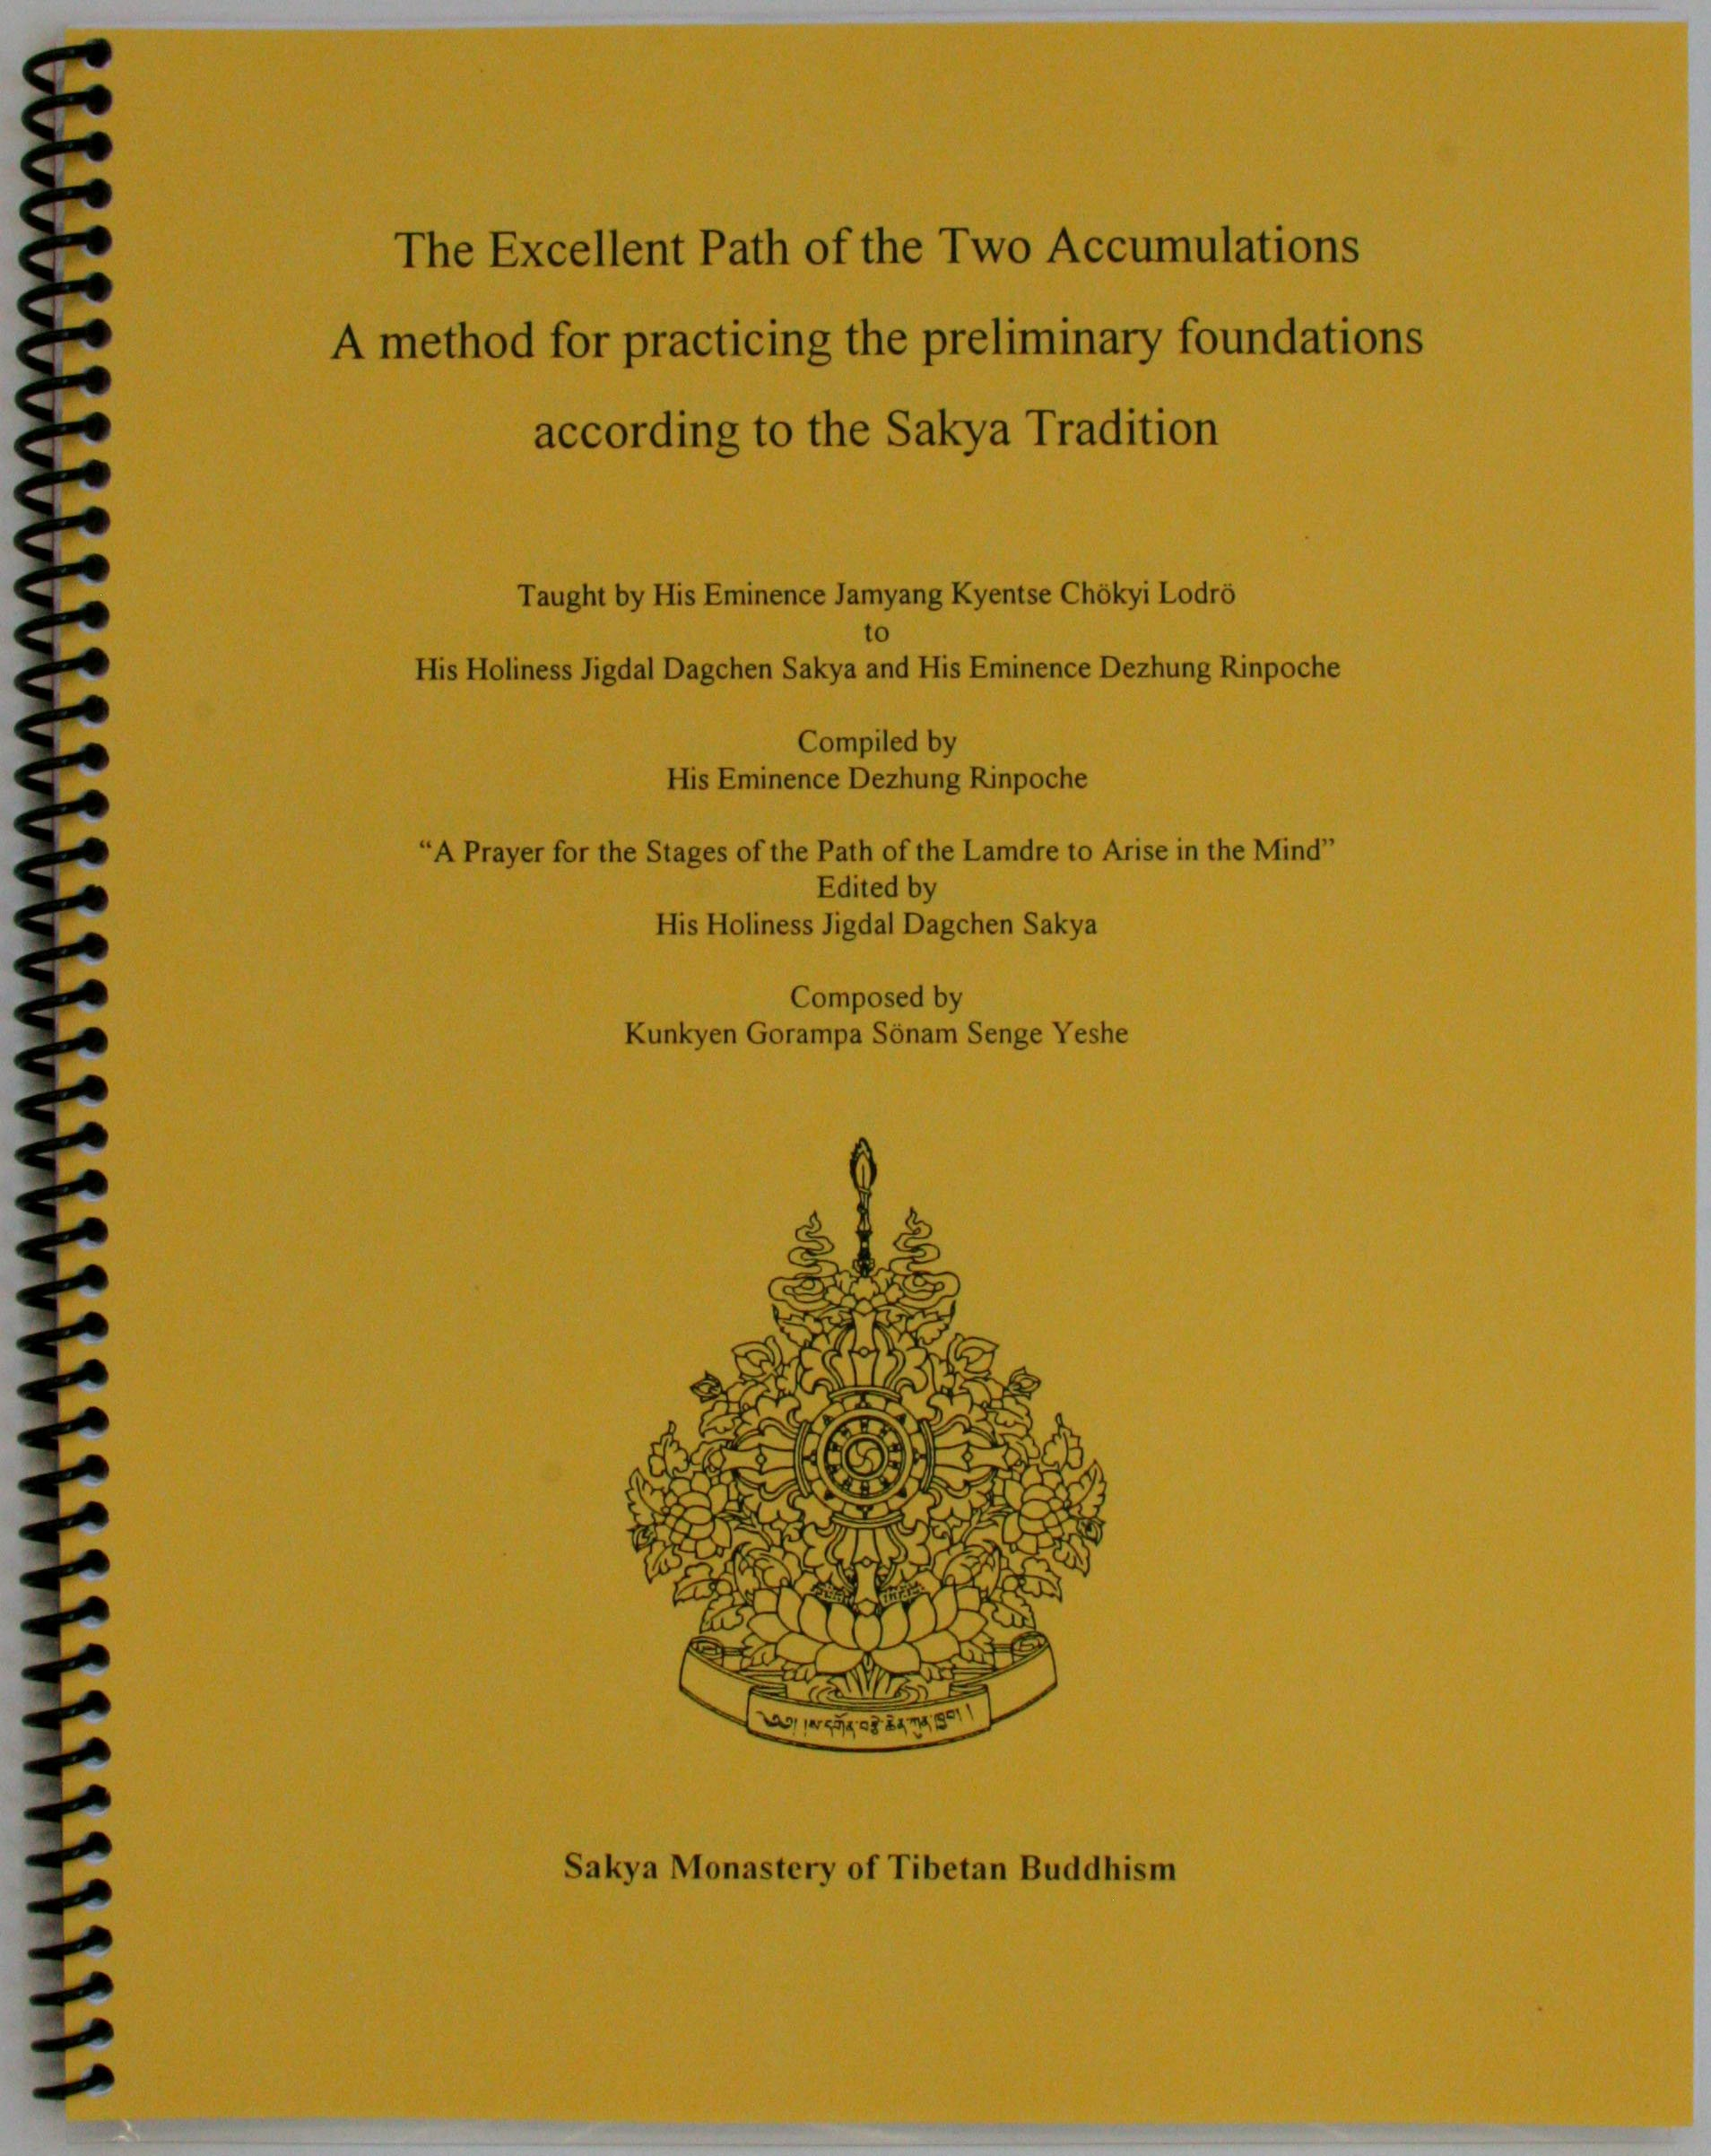 The Excellent Path of the Two Accumulations: A method for practicing the preliminary foundations according to the Sakya Tradition pdf